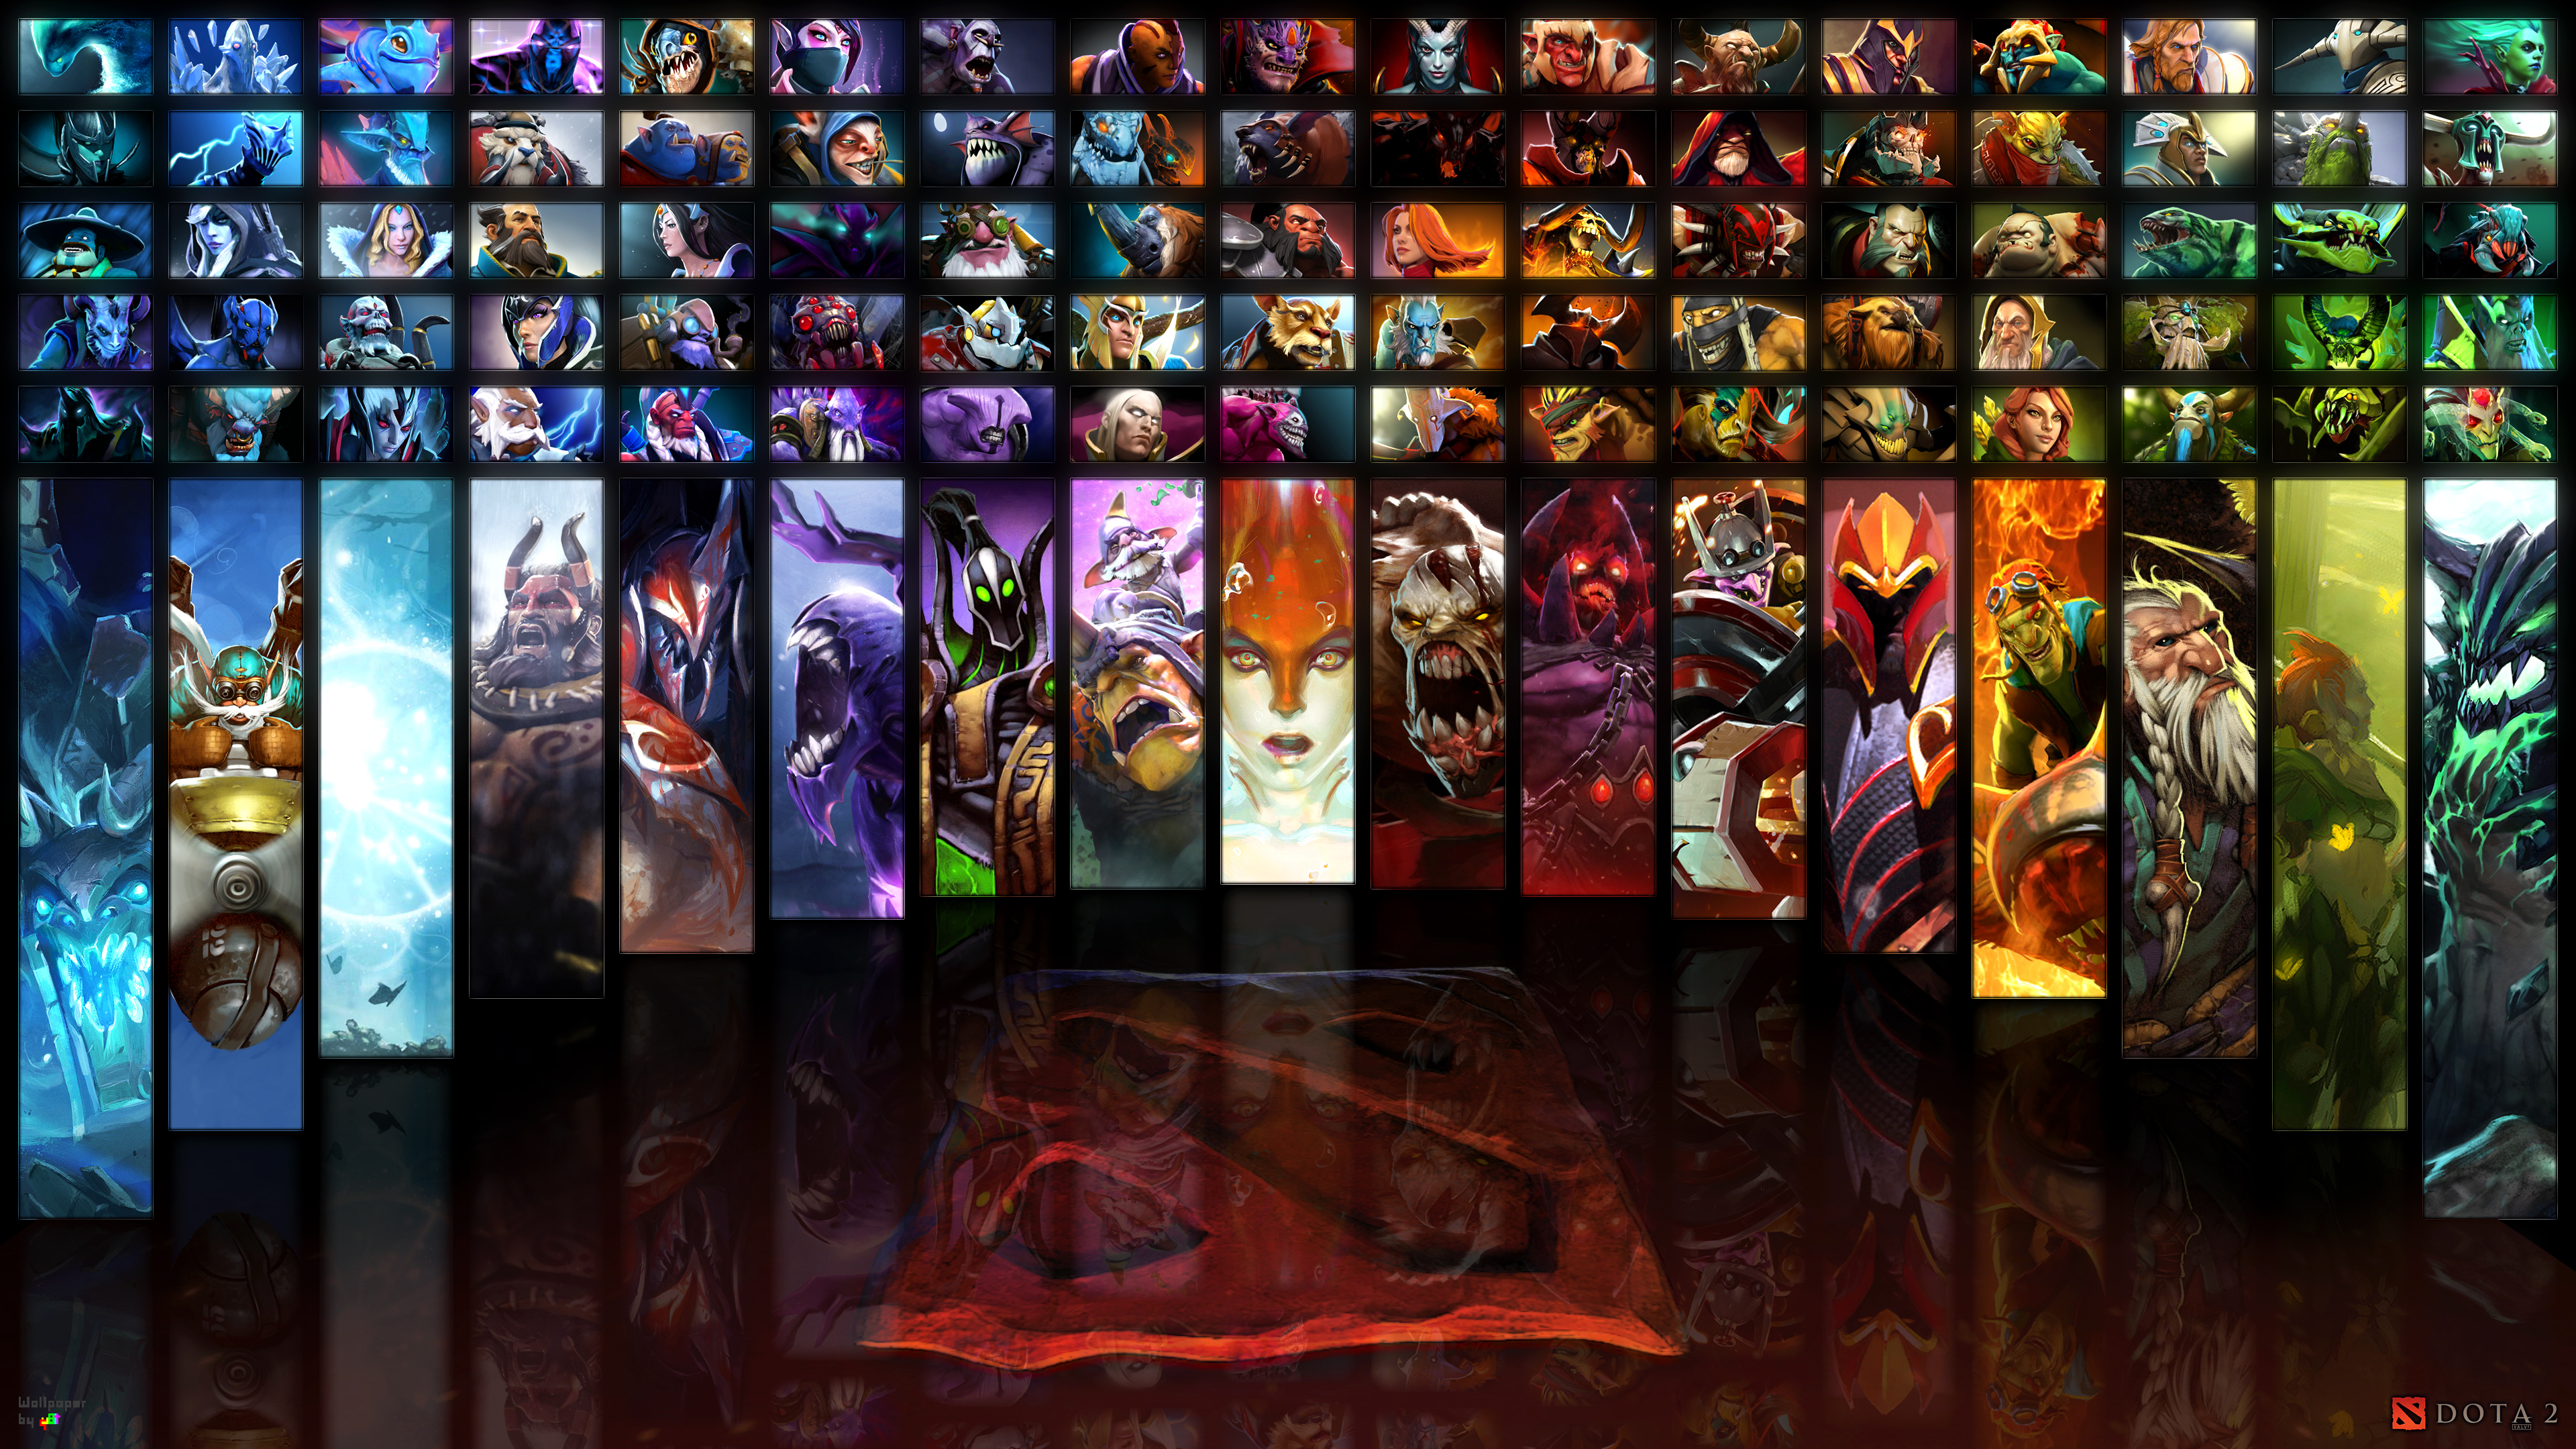 Heroes Dota 2 wallpapers